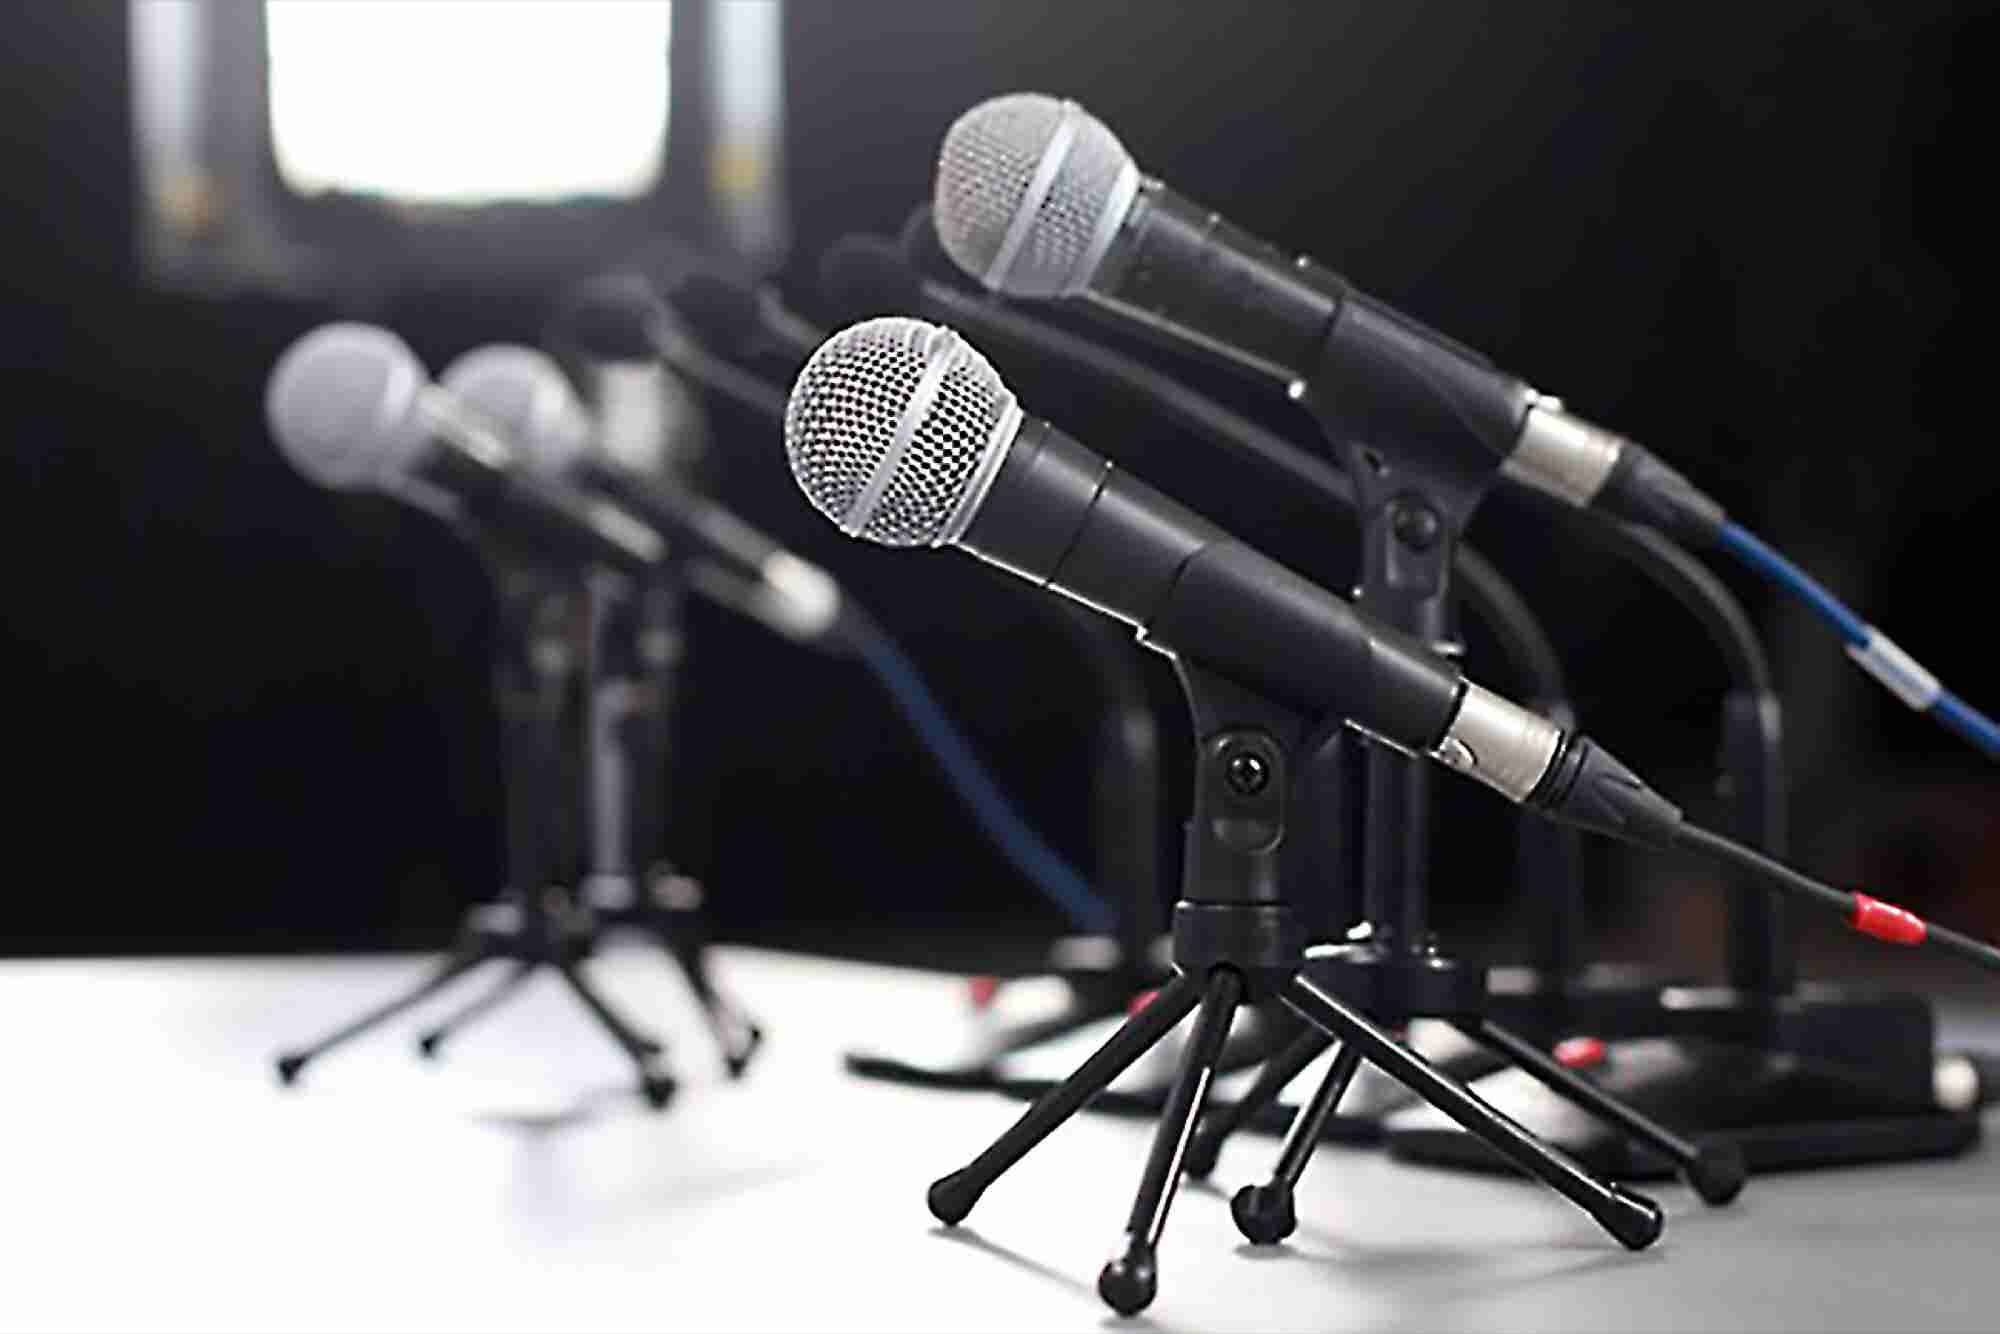 12 Ways to Land Media Coverage Without a Press Release